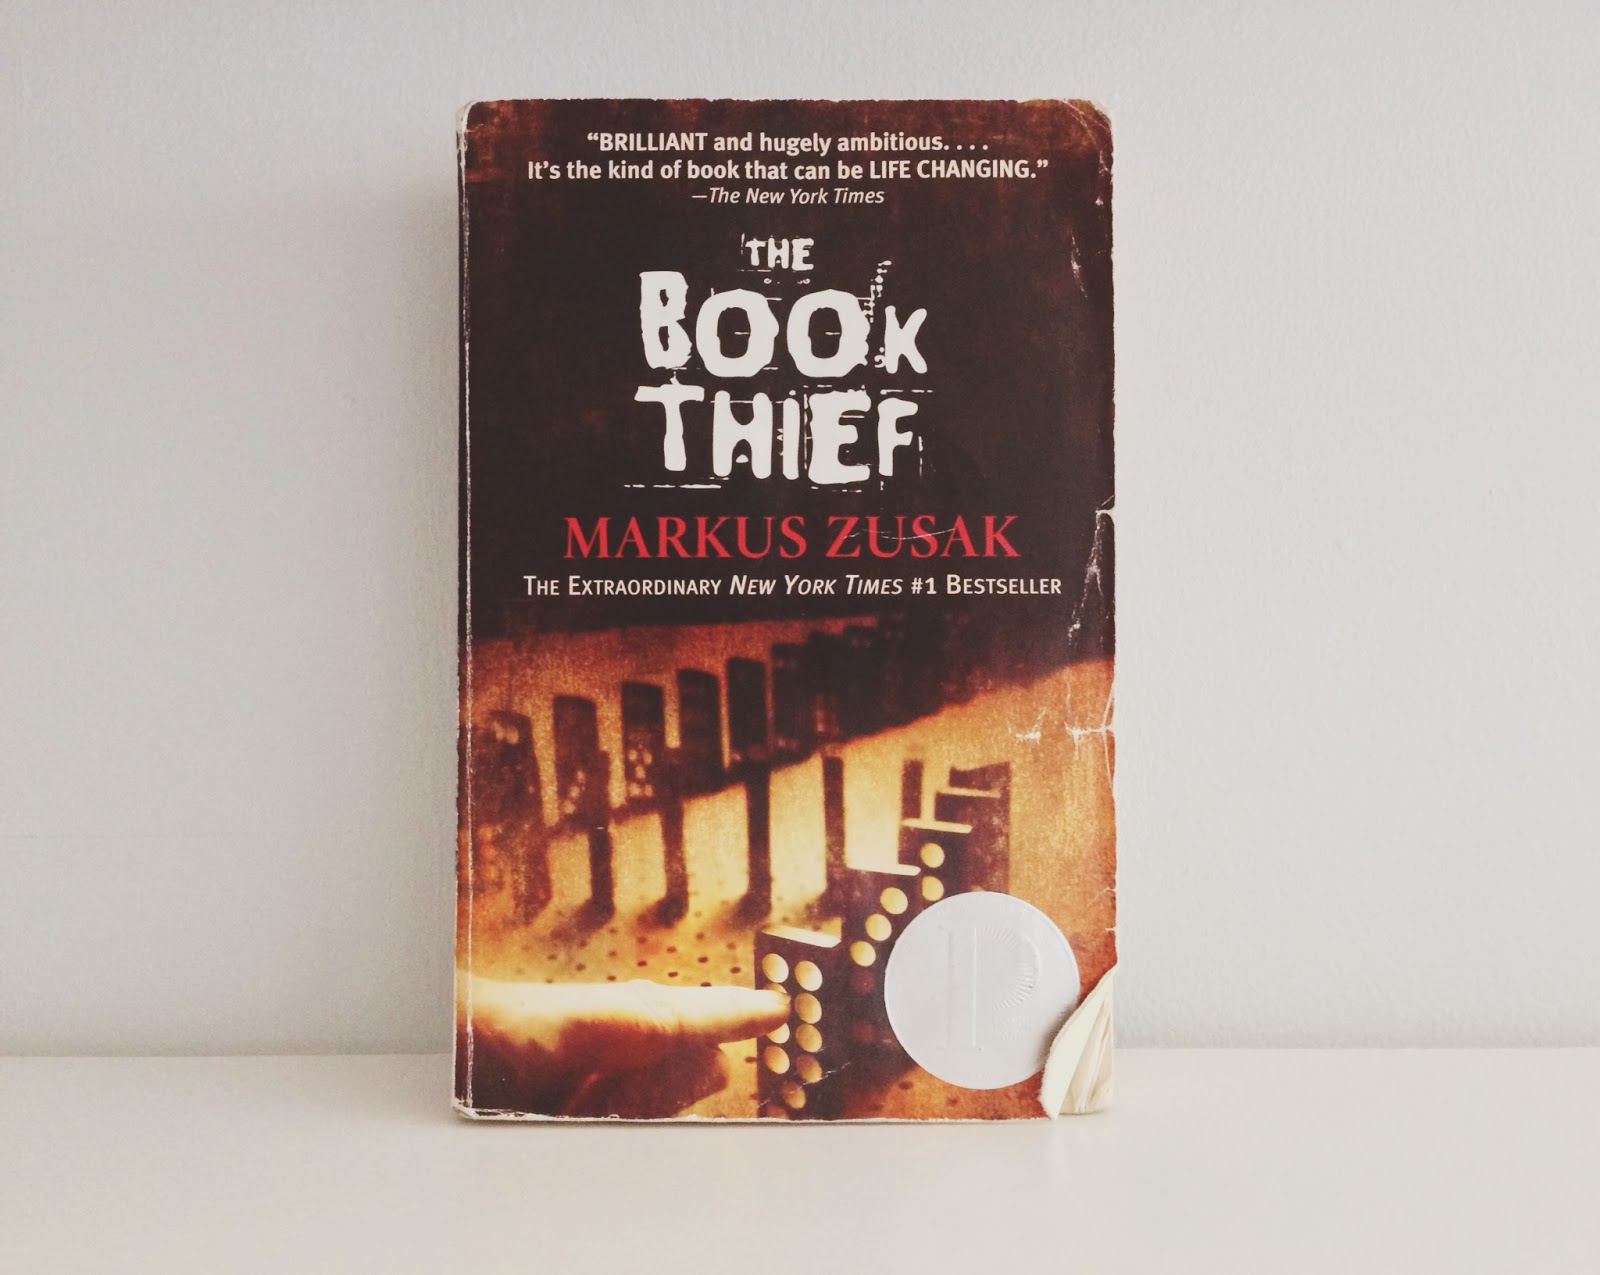 a personal review of the book thief by markus zusak Markus zusak's international bestseller the book thief has been brought to the screen with quiet effectiveness and scrupulous taste by director brian percival and writer michael petroni.